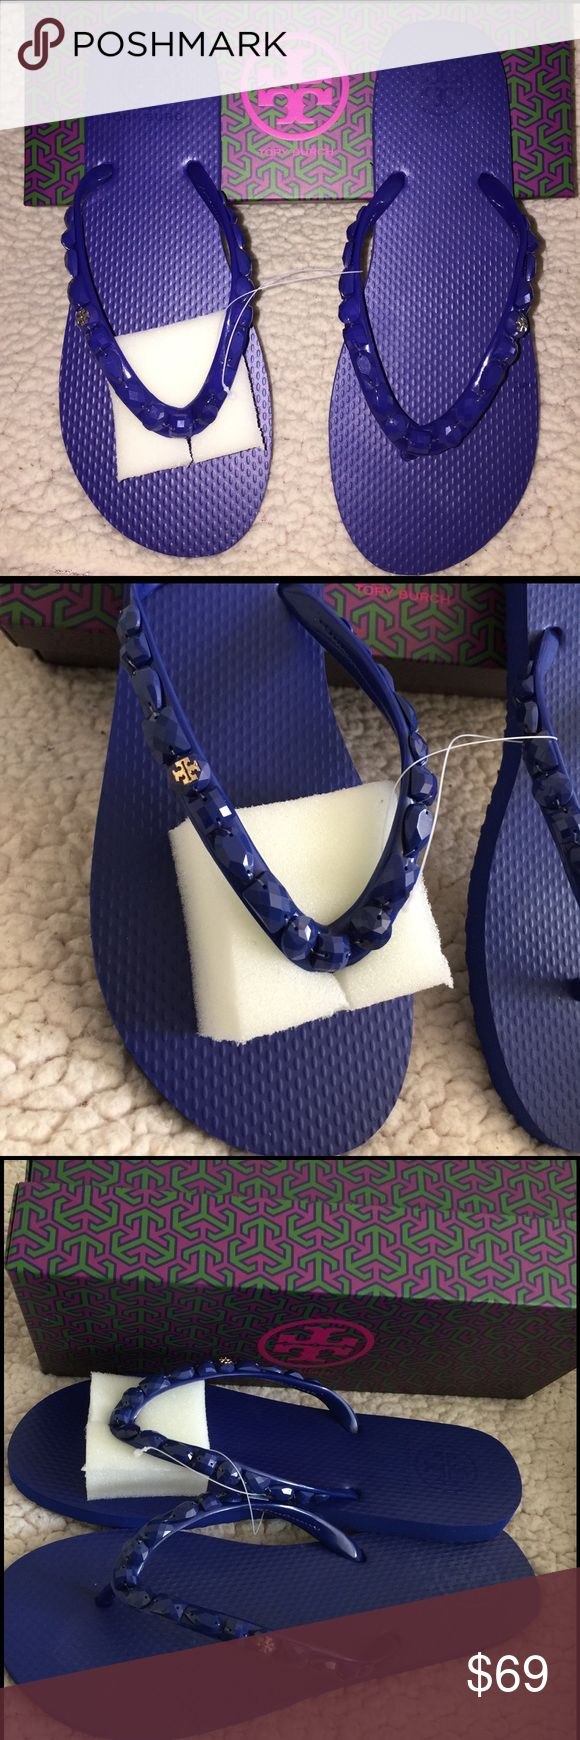 NEW💙 TORY BURCH JEWELED FLIP FLOP ❌NO TRADES❌ Brand new Flip flops from Tory Burch.  ROYAL NAVY color with jewels alongside the straps and signature logo in gold tone.  Size 9 Tory Burch Shoes Sandals